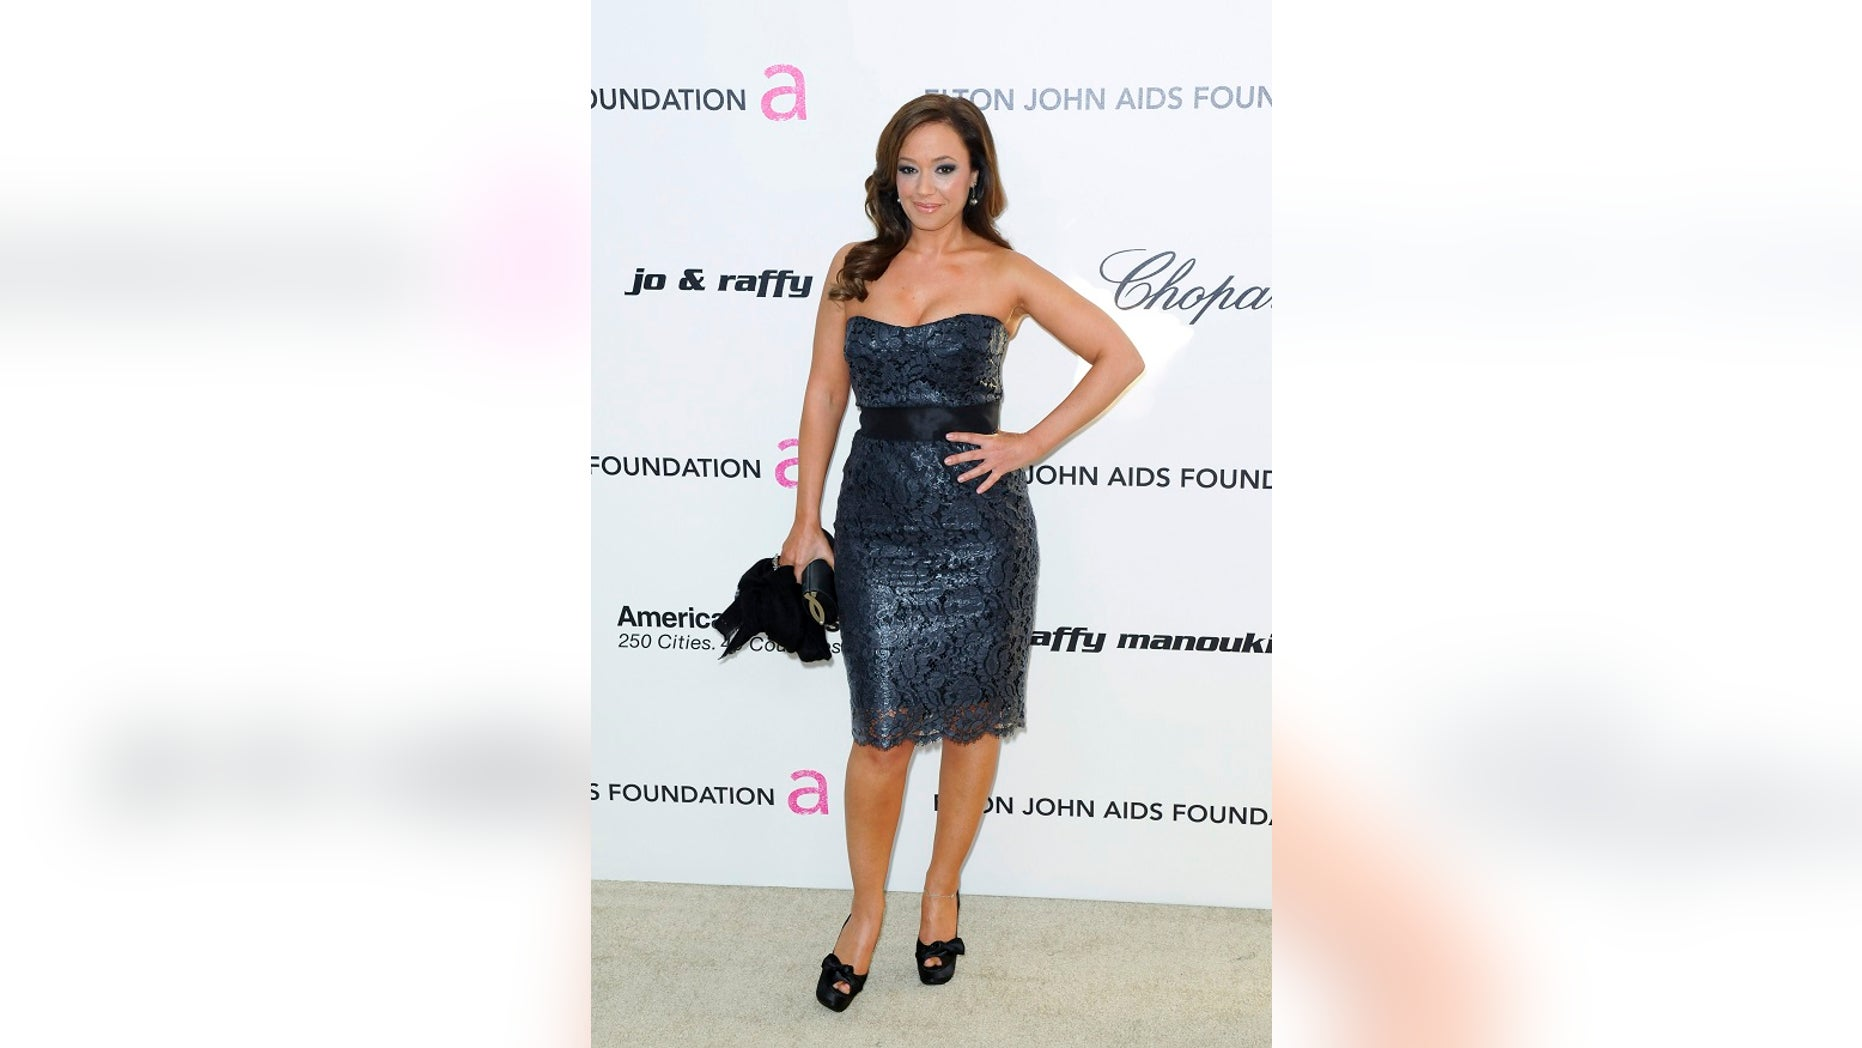 """Leah Remini of A&E's """"Leah Remini: Scientology and the Aftermath"""" said the Church of Scientology members discuss who to vote for in political elections."""